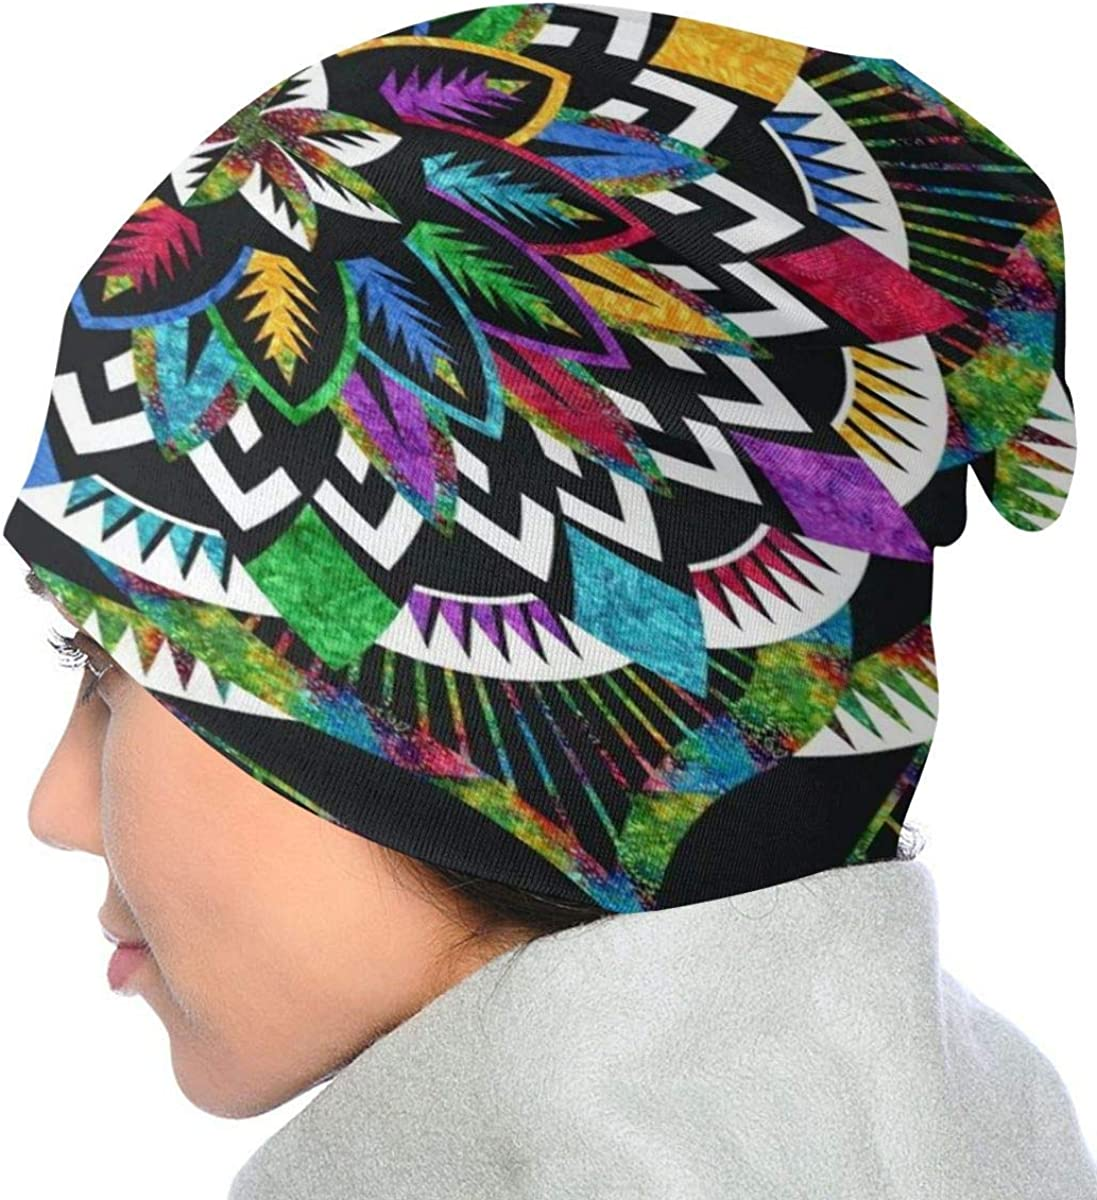 Dahlias Mardi Gras Beanies Soft Stretch Knit Beanie Hat Comfortable Windproof Knit Cap Durable Lightweight Skull Hat Breathable Portable Ski Cap for Boys Girls